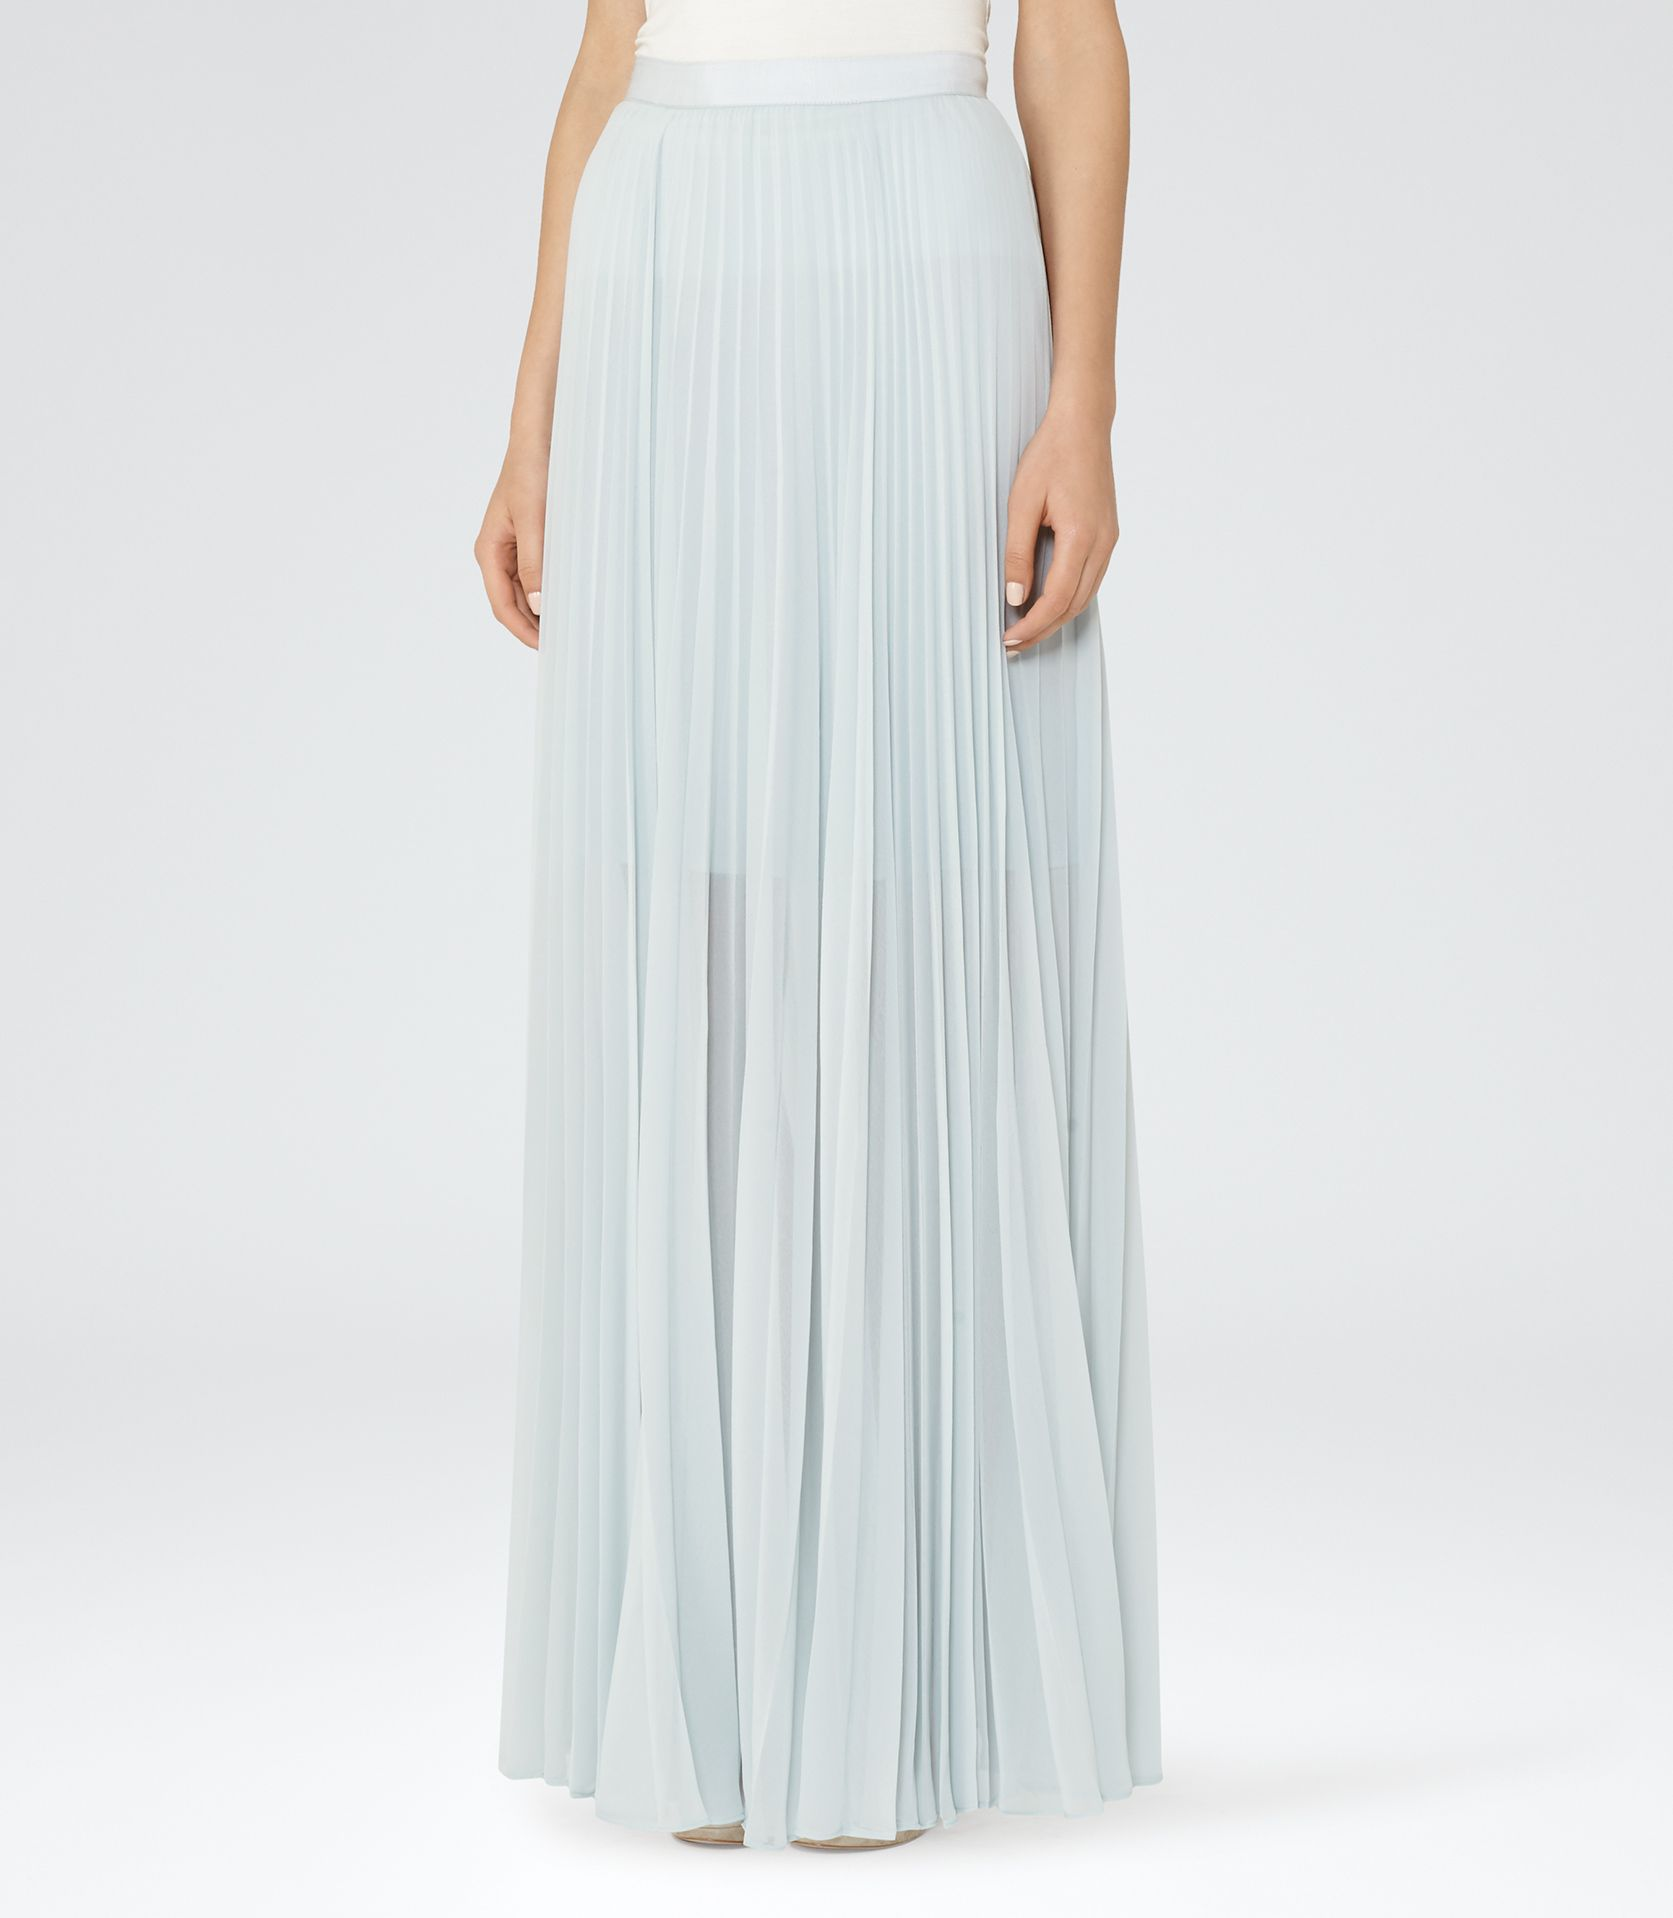 cf78ac18c Womens Grey Blue Pleated Maxi Skirt - Reiss Rafa | would love to have